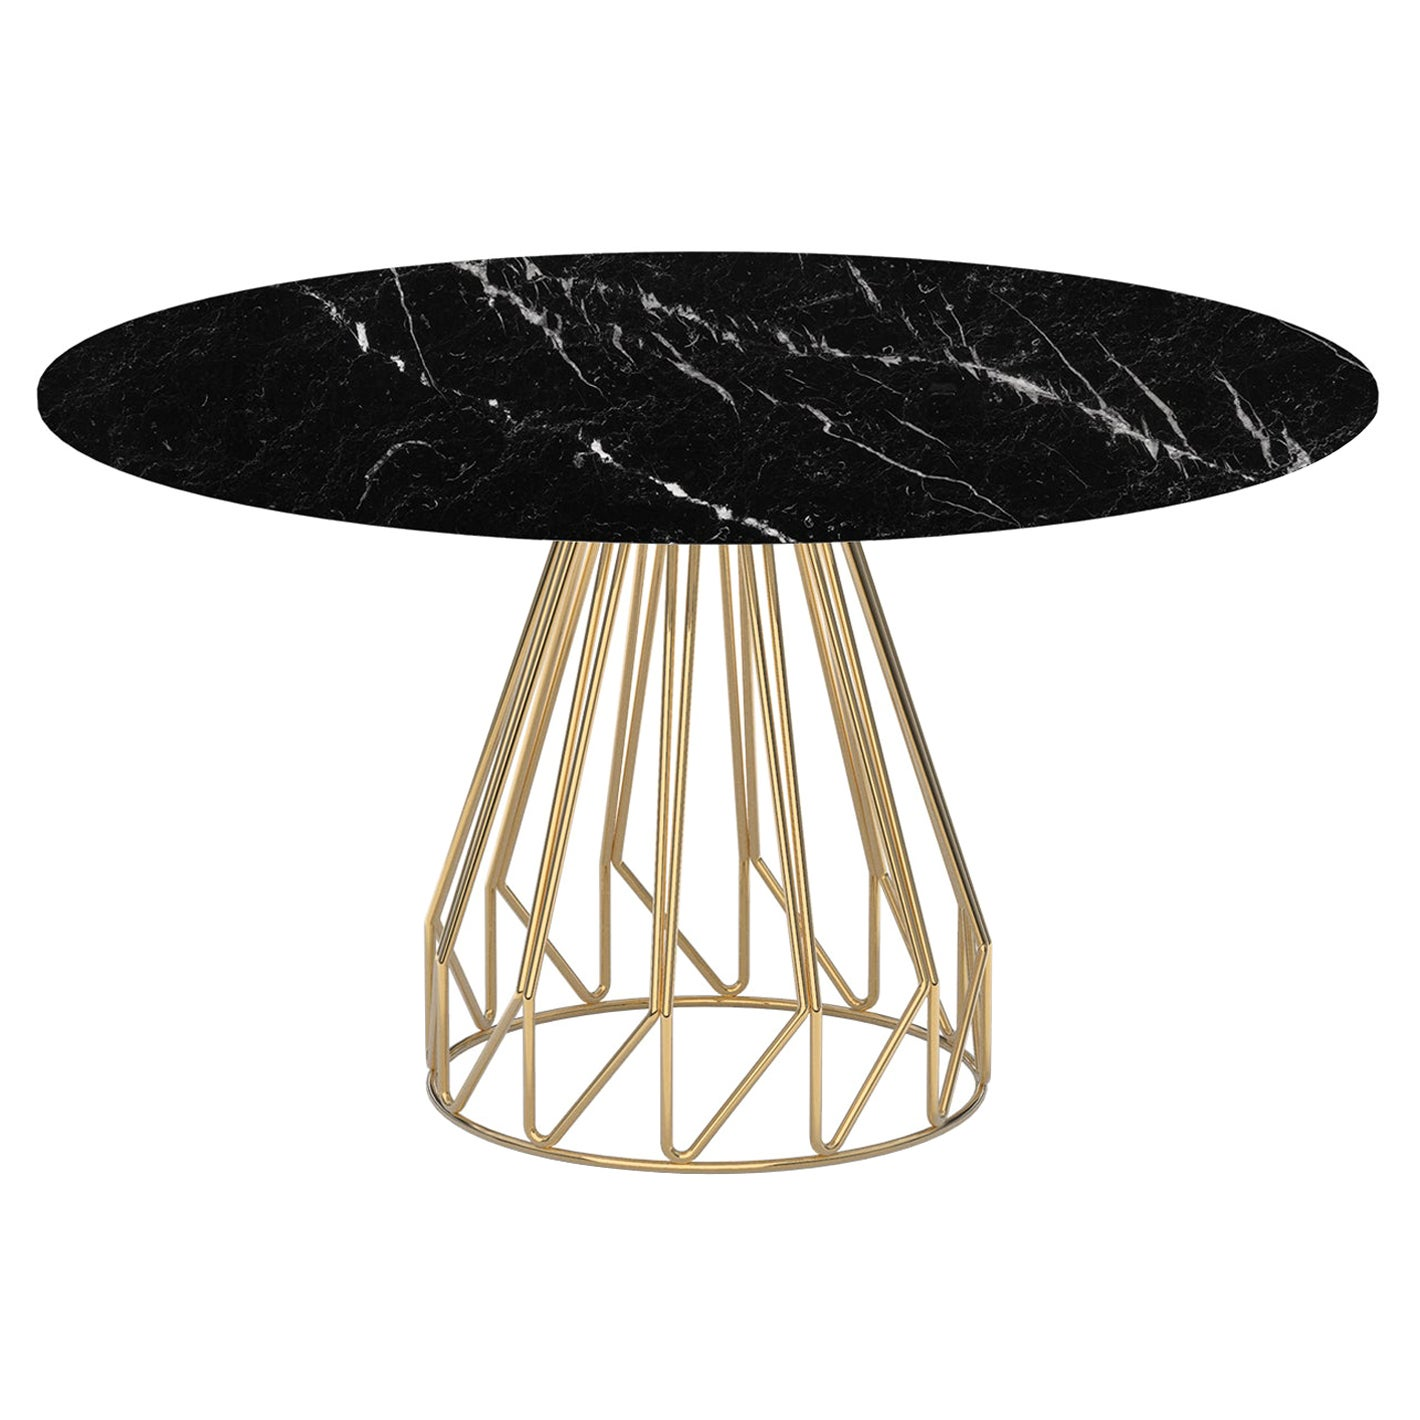 Contemporary Minimalist Table Gold, Black Marquinia Made in Italy by LapiegaWD